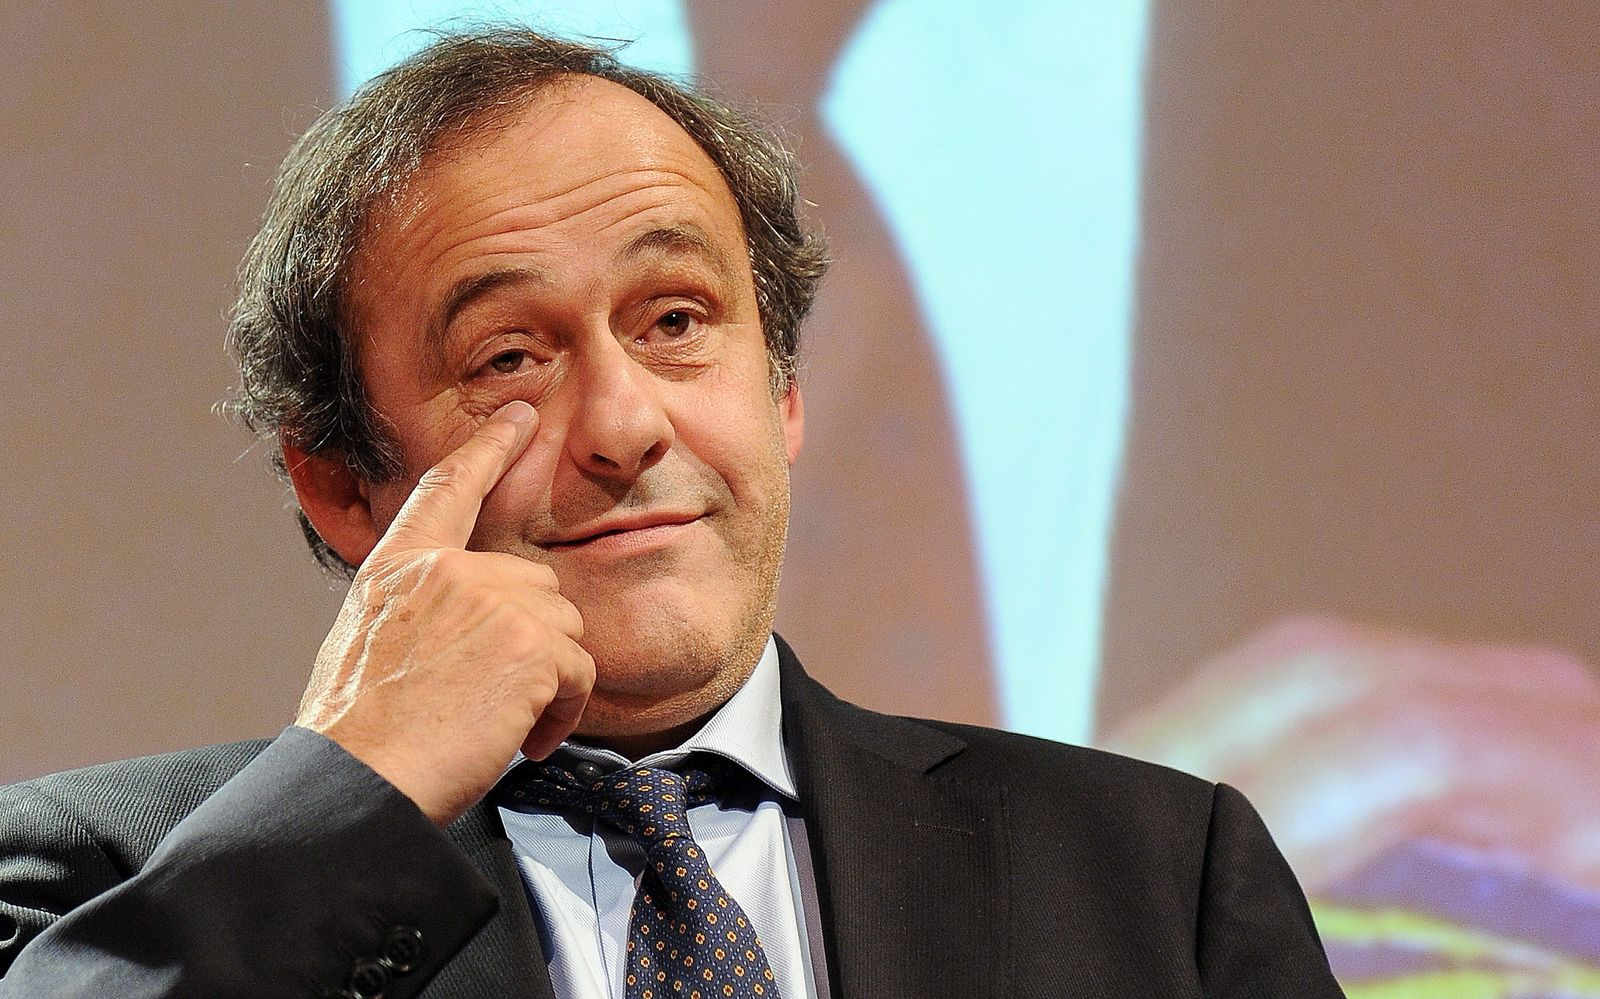 UEFA President Michel Platini during the award ceremony of the in